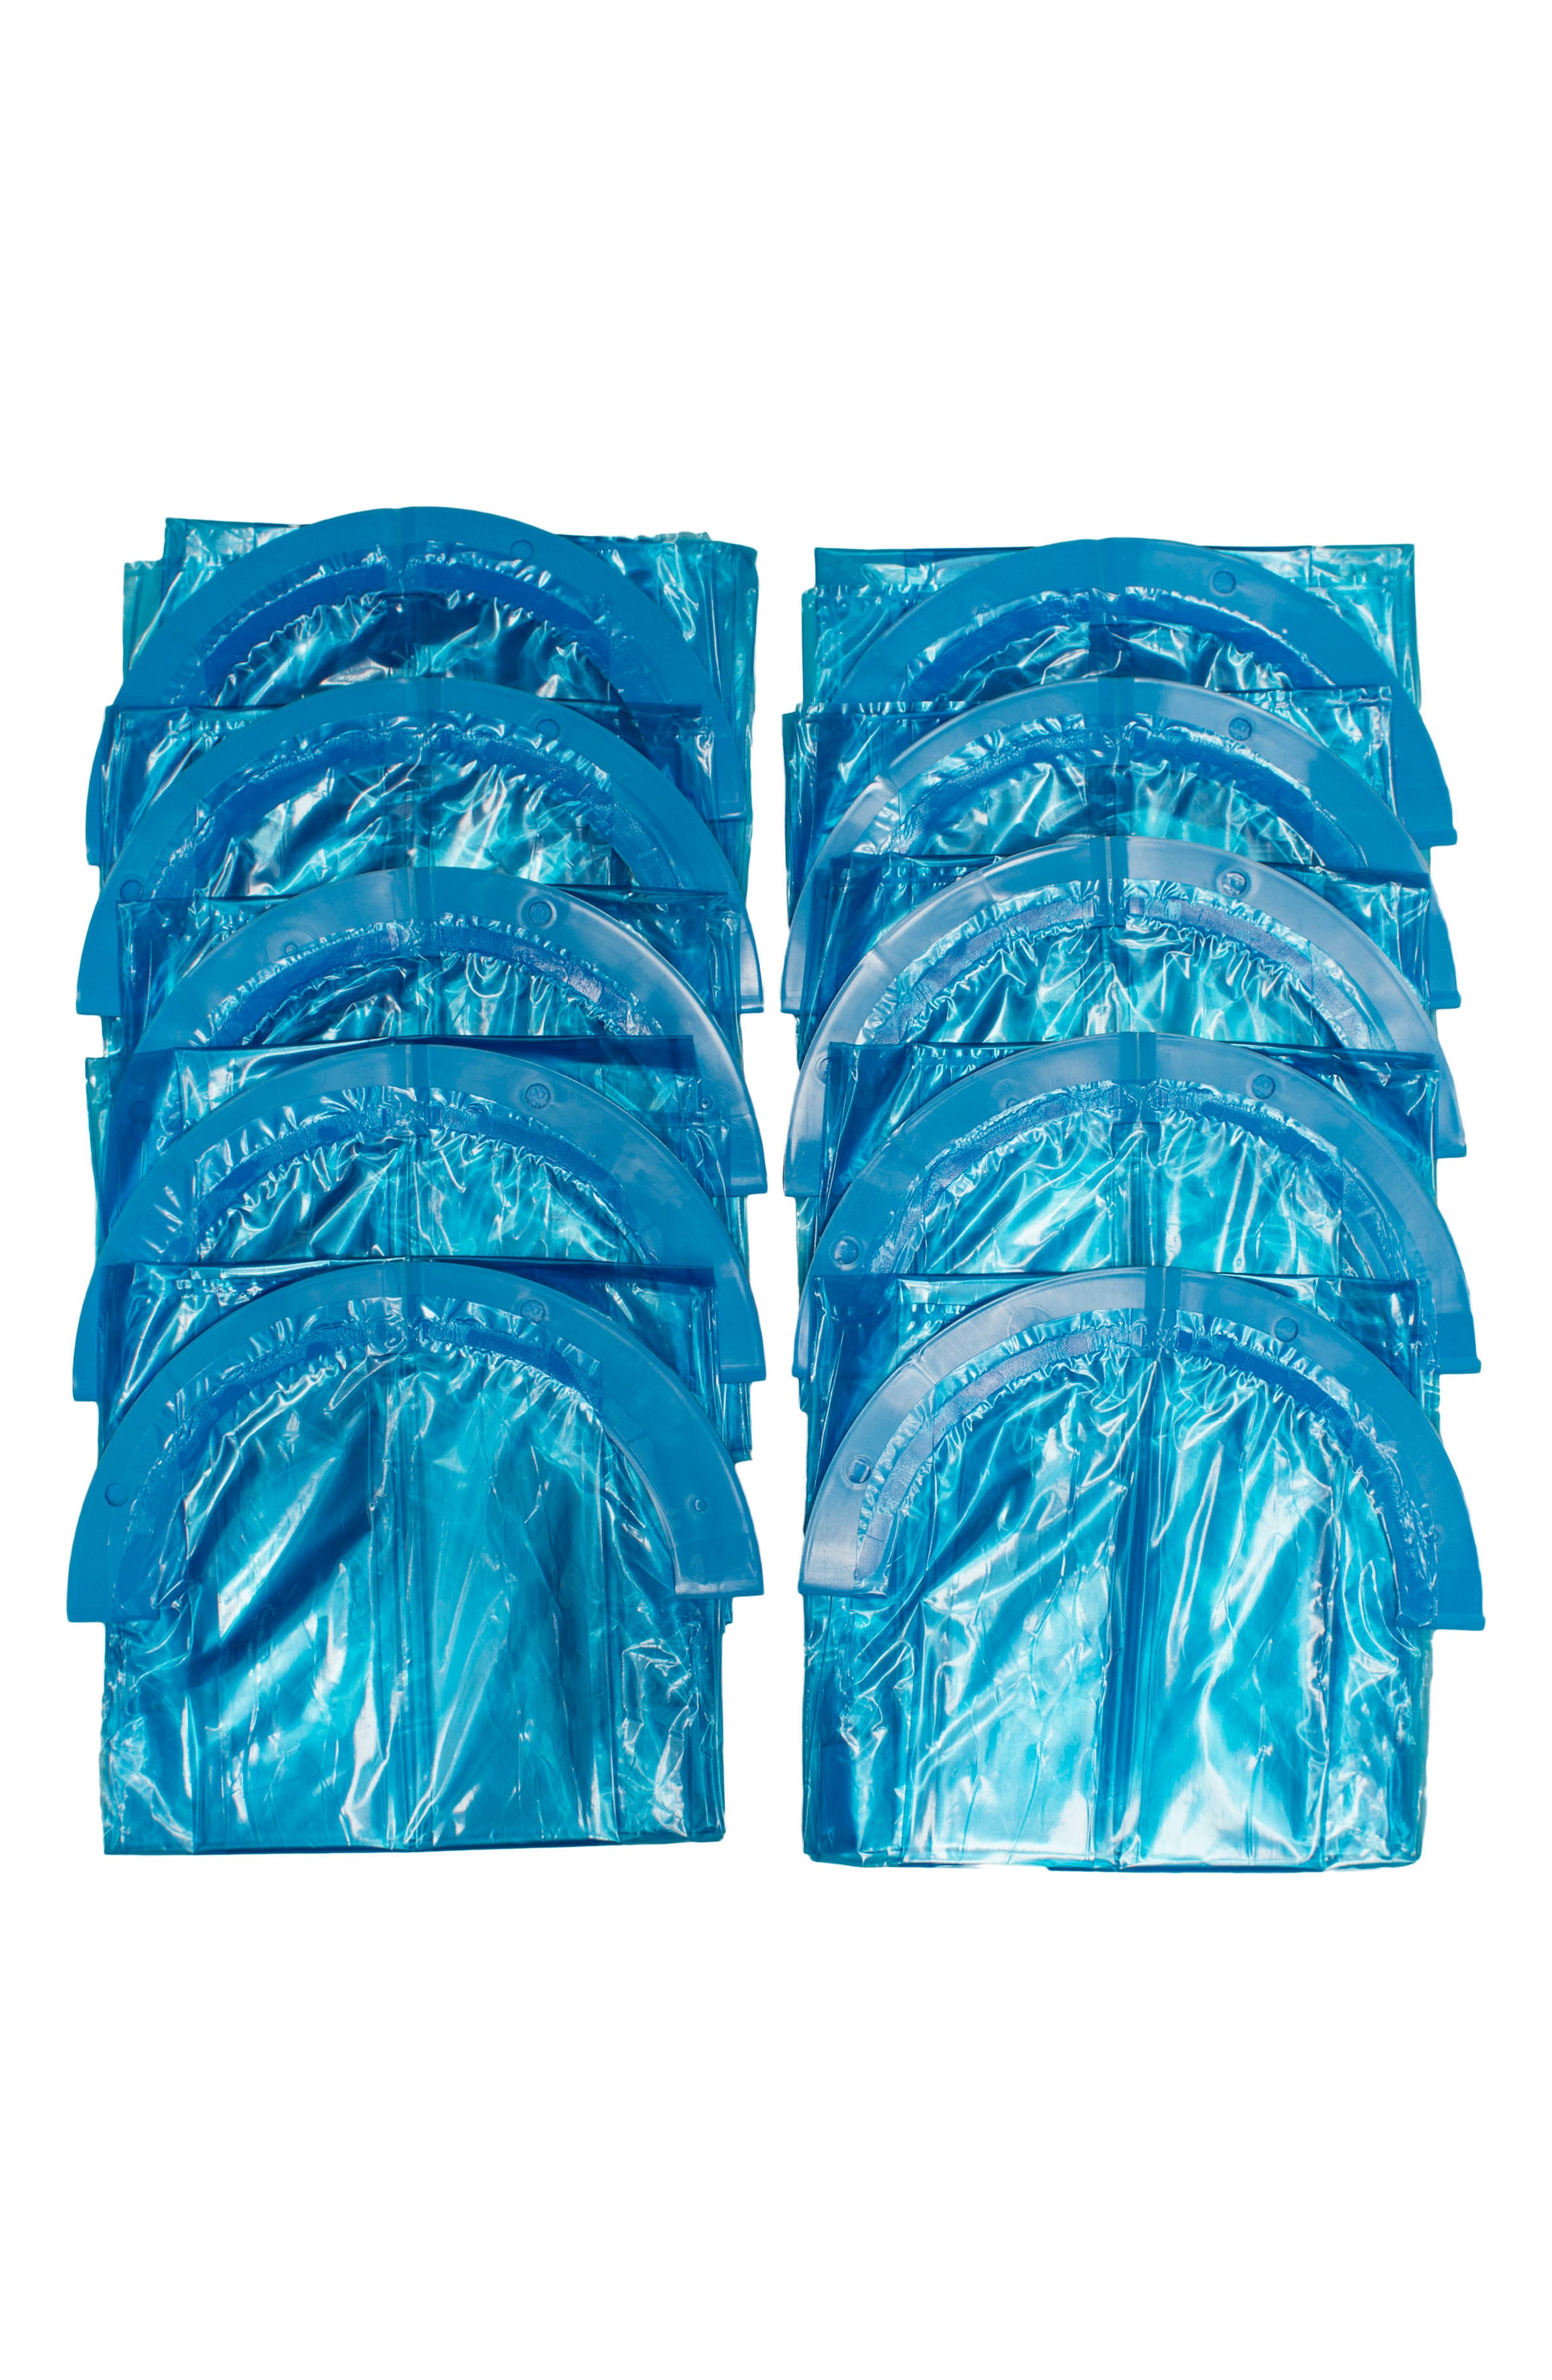 Twist'r Diaper Disposal System Set of 10 Refill Bags,                         Main,                         color,